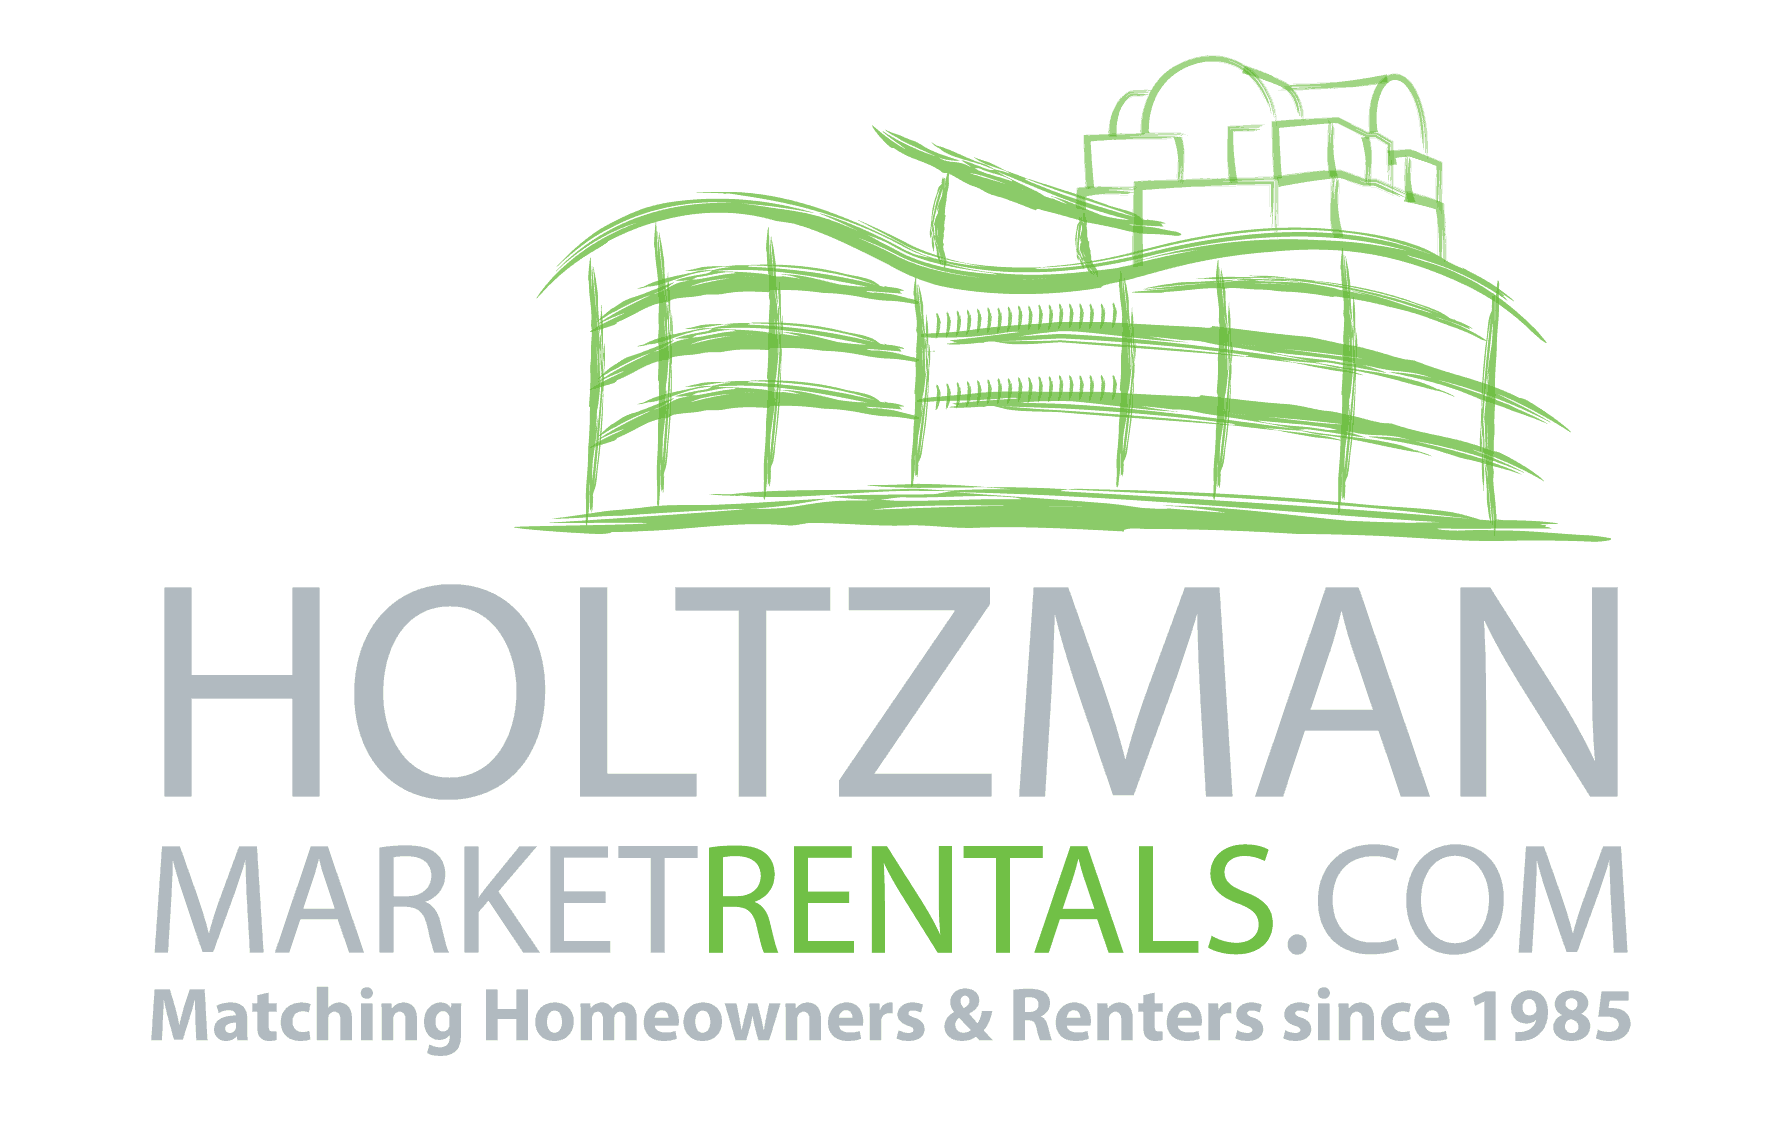 Rent Your Home during Market. Market Rentals   Matching Renters and Homeowners